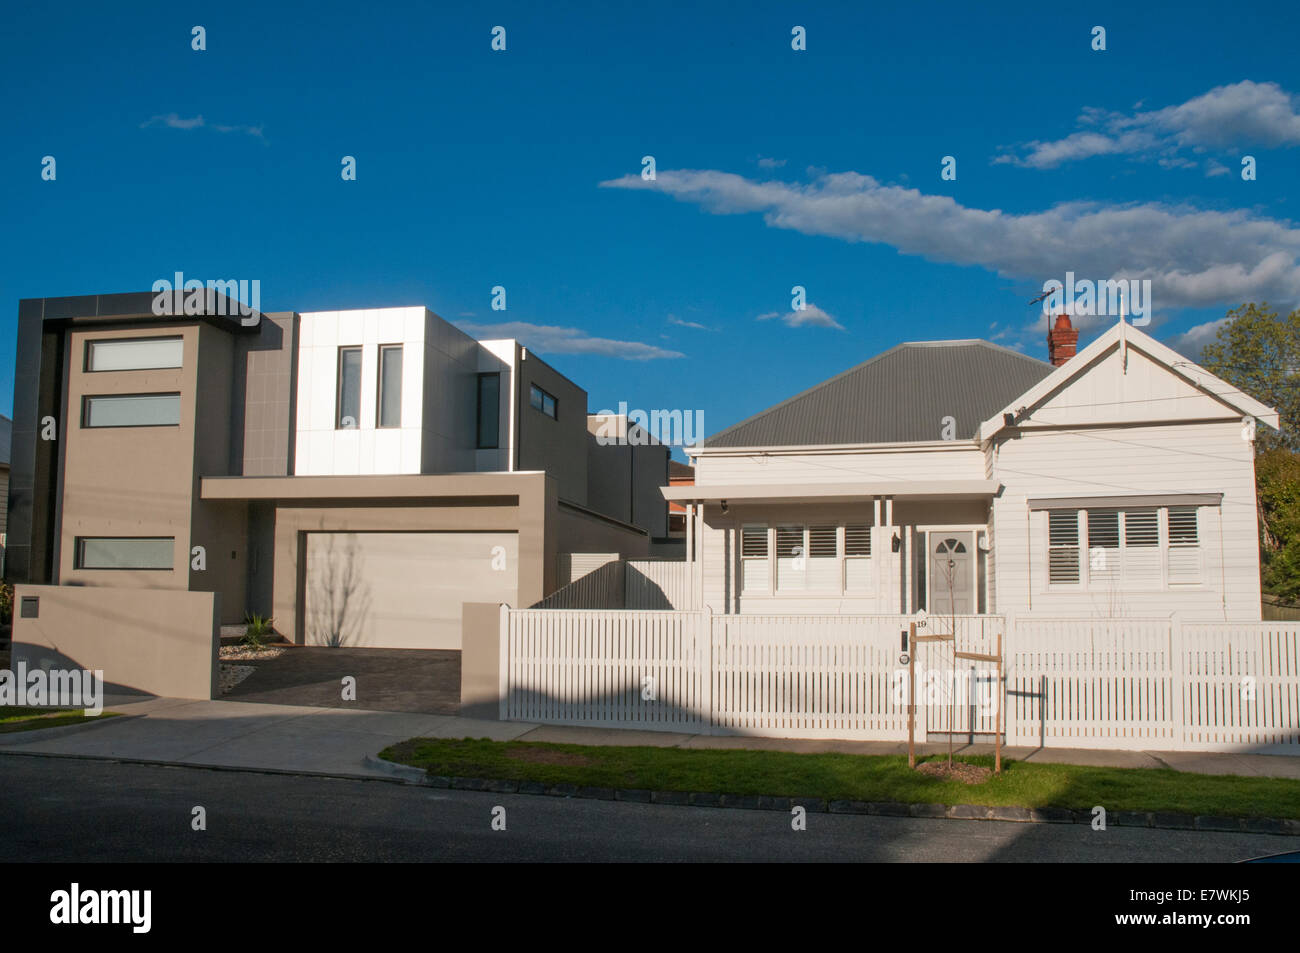 A starkly angular moden home clashes with older (Edwardian) architectural styles in the Melbourne suburb of Caulfield - Stock Image